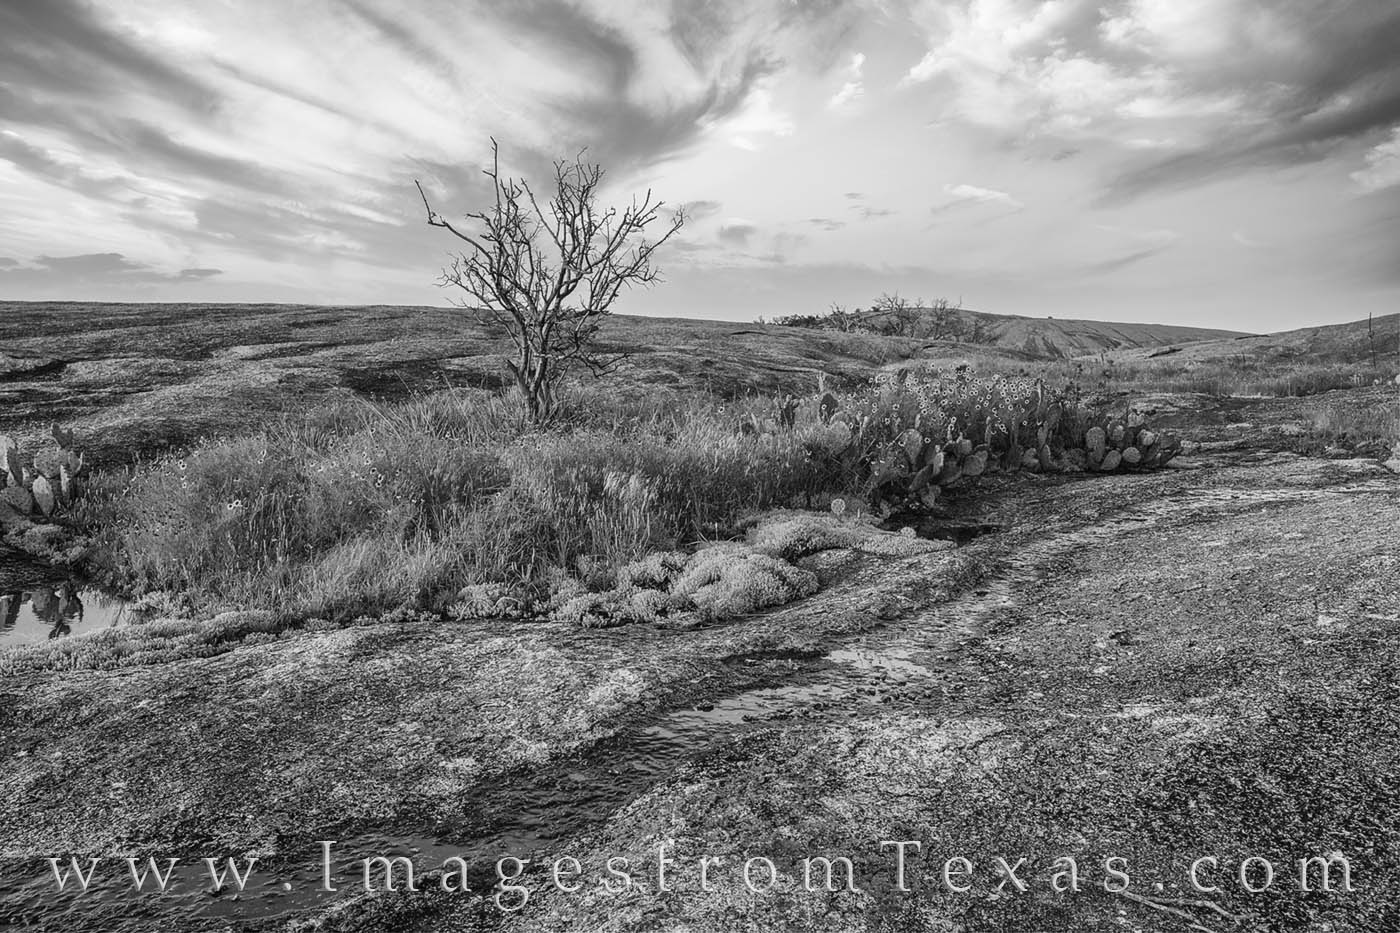 wildflowers, enchanted rock, hill country, state parks, spring, prints for sale, texas photos for sale, photo